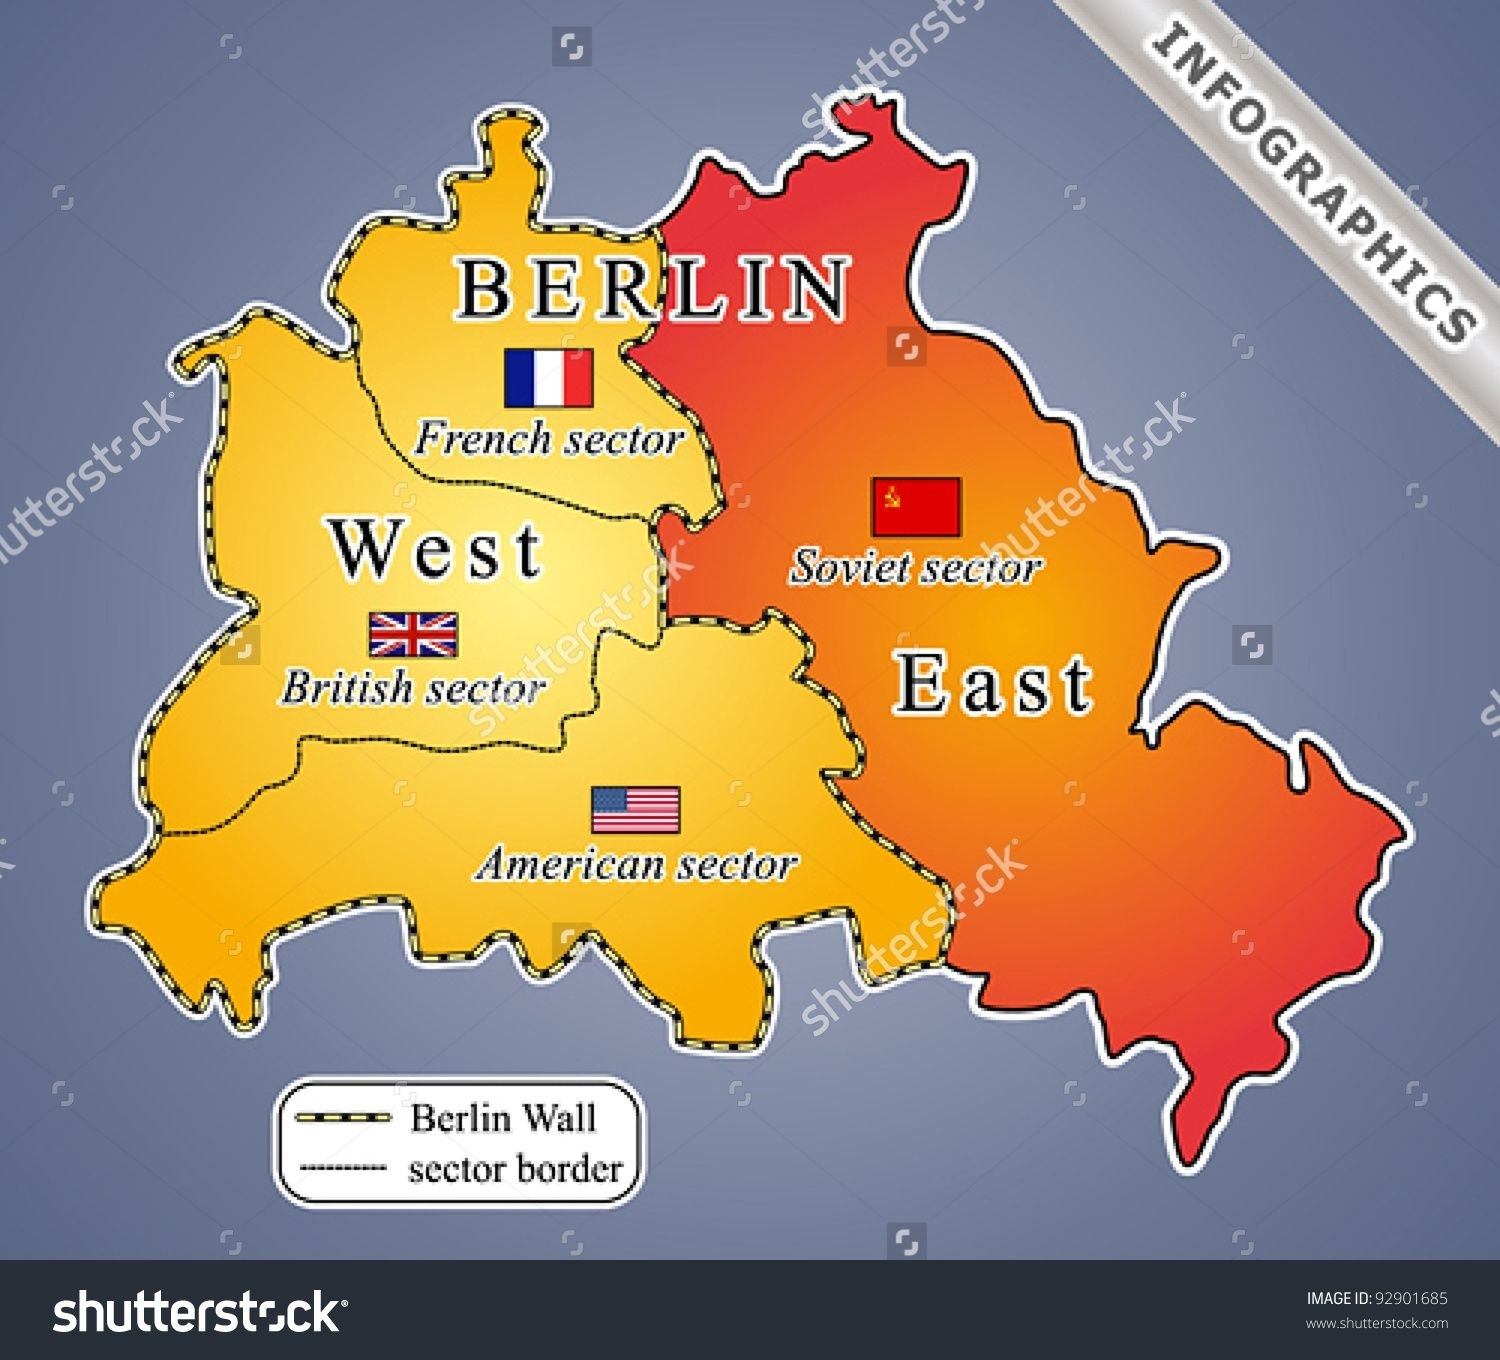 The Berlin Wall Was Built In The Wake Of World War Ii, Dividing with East West Germany Map Berlin Wall